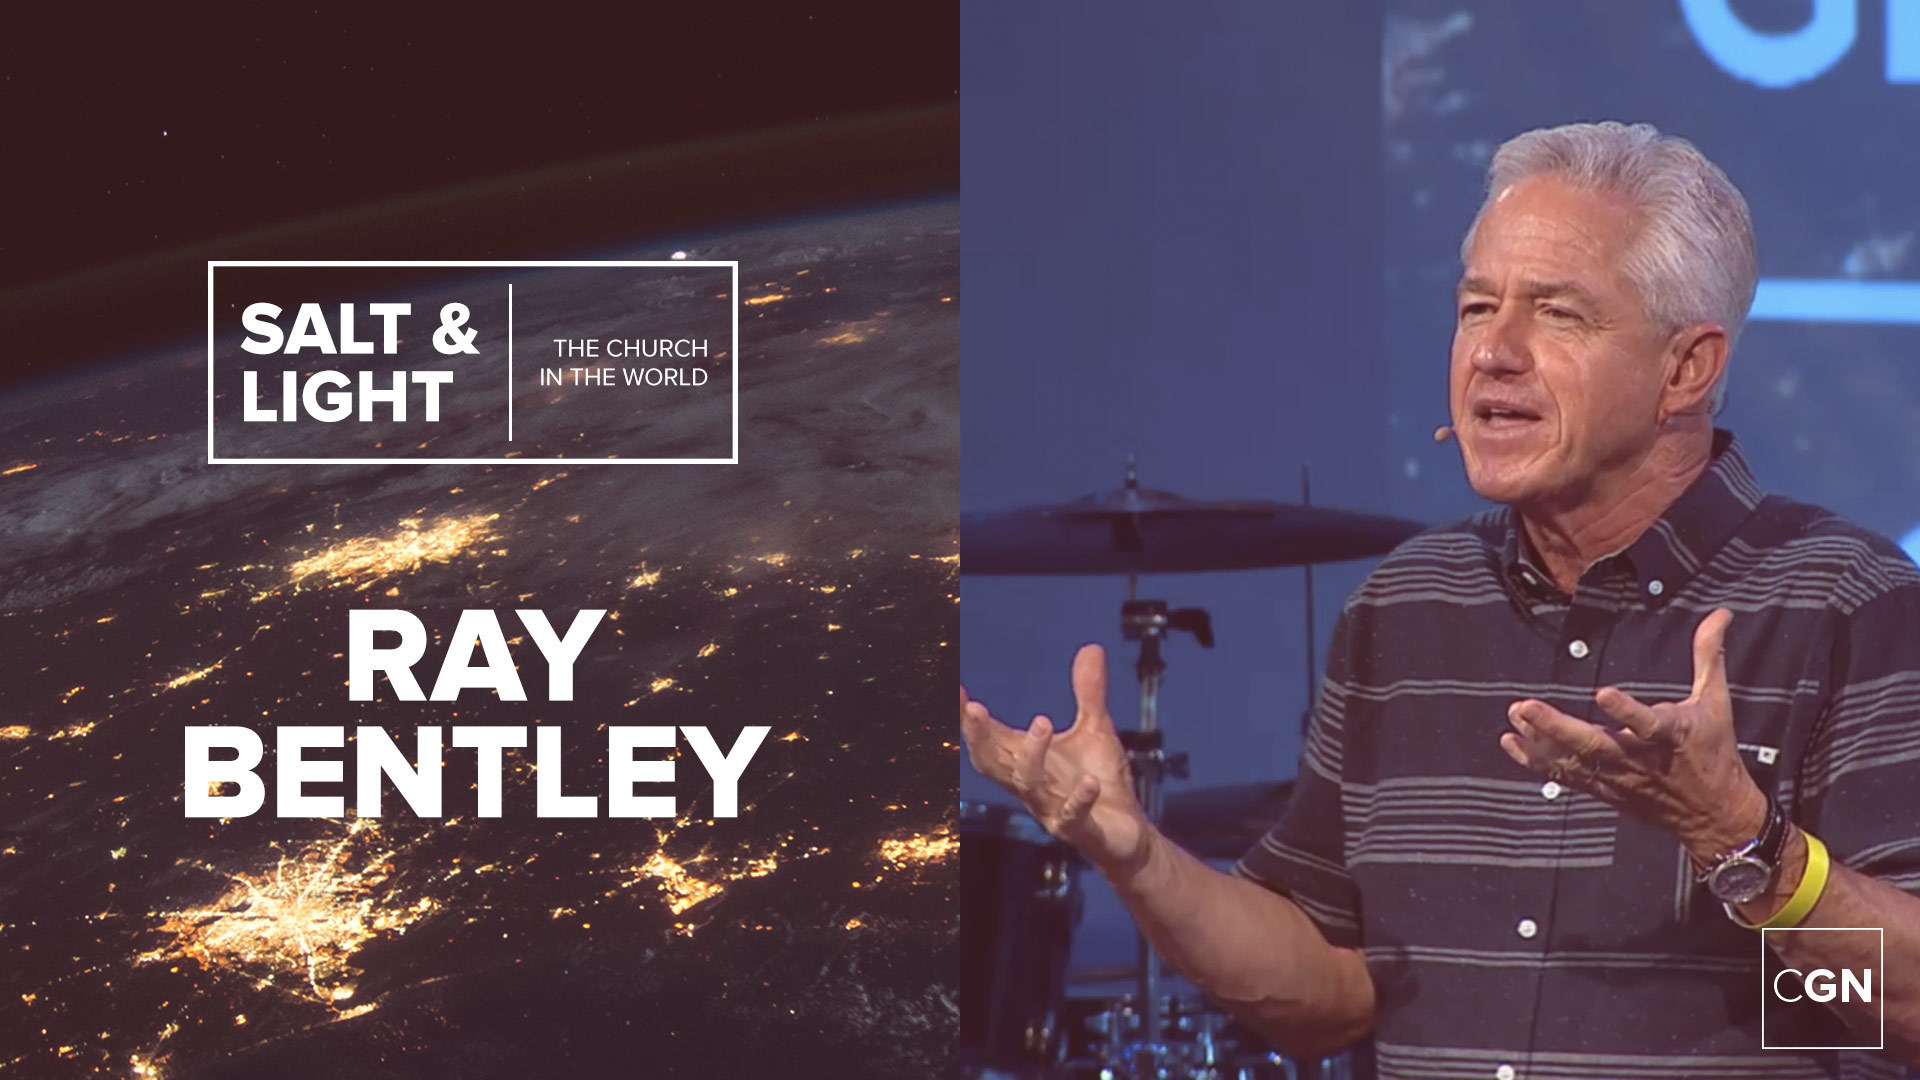 Session 12: Thy Kingdom Come! - Ray Bentley